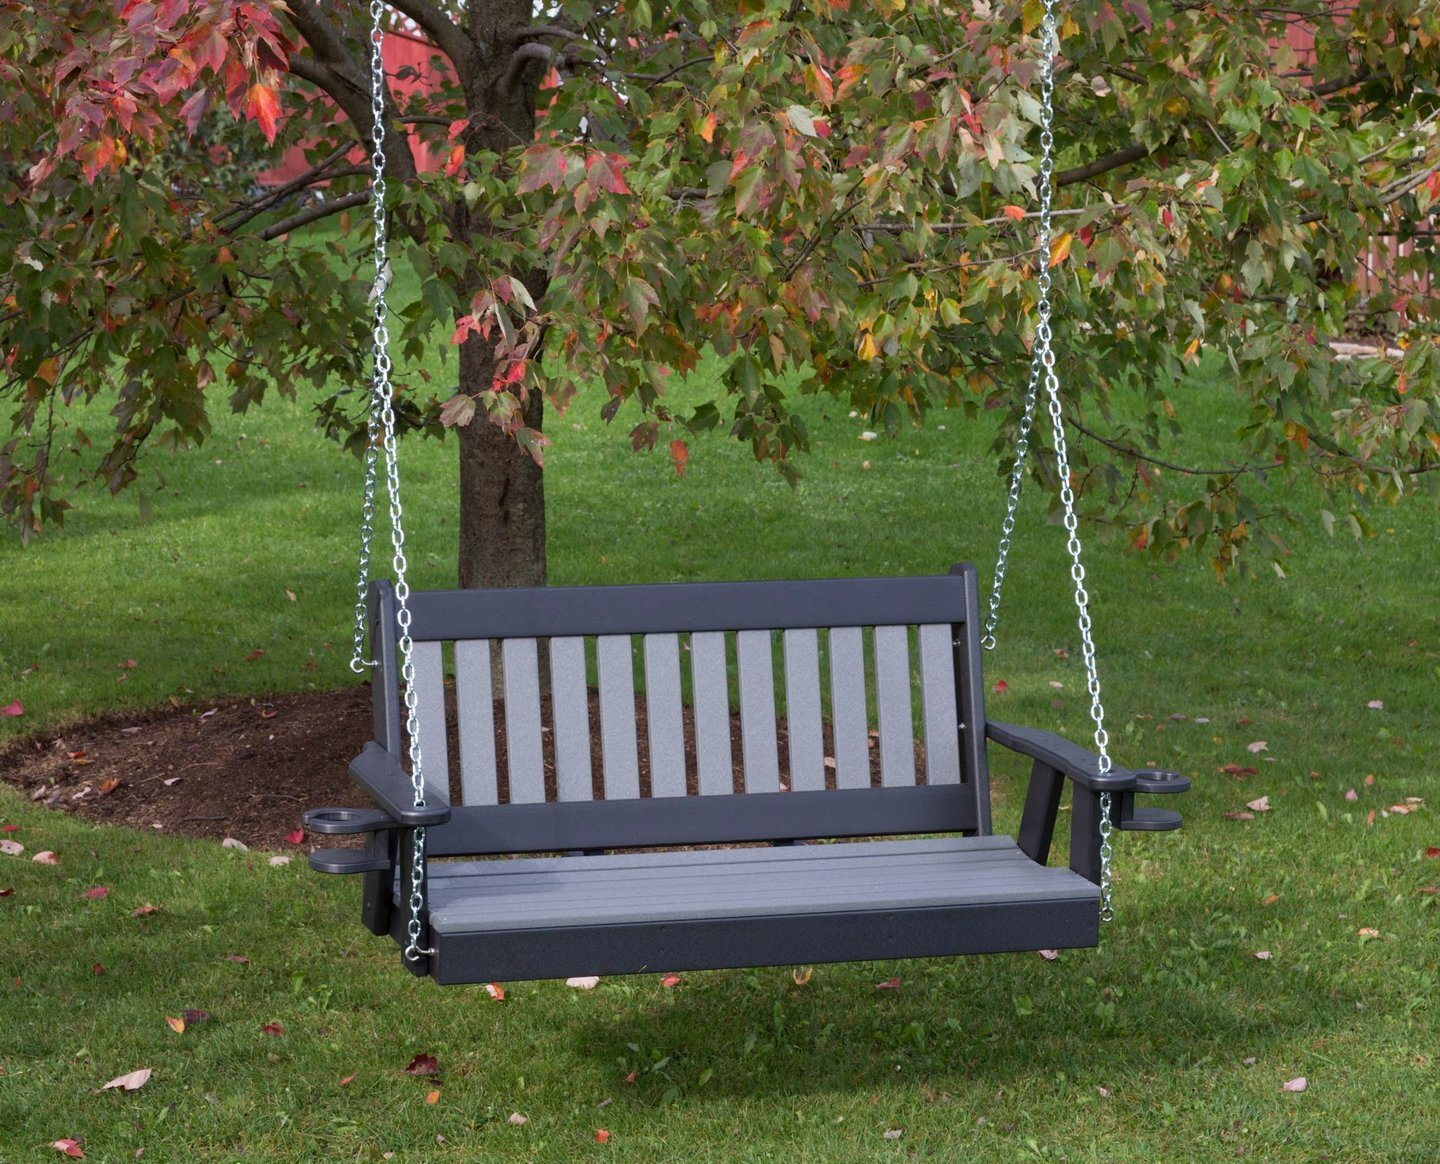 4FT-DARK GRAY-POLY LUMBER Mission Porch Swing with Cupholder arms Heavy Duty EVERLASTING PolyTuf HDPE - MADE IN USA - AMISH CRAFTED